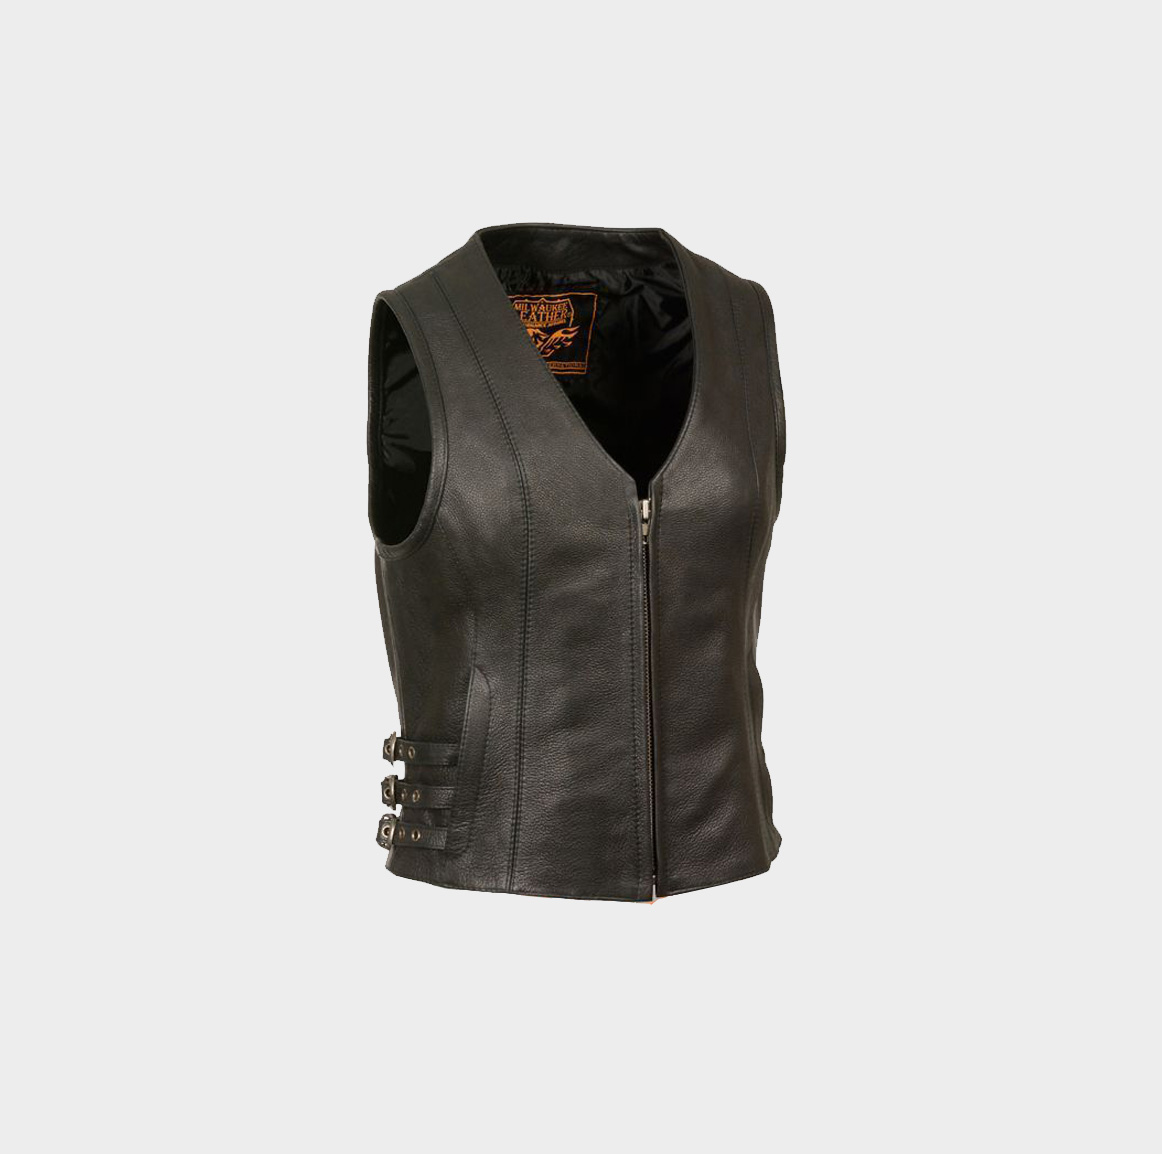 Buy vests Women's tops Cheap